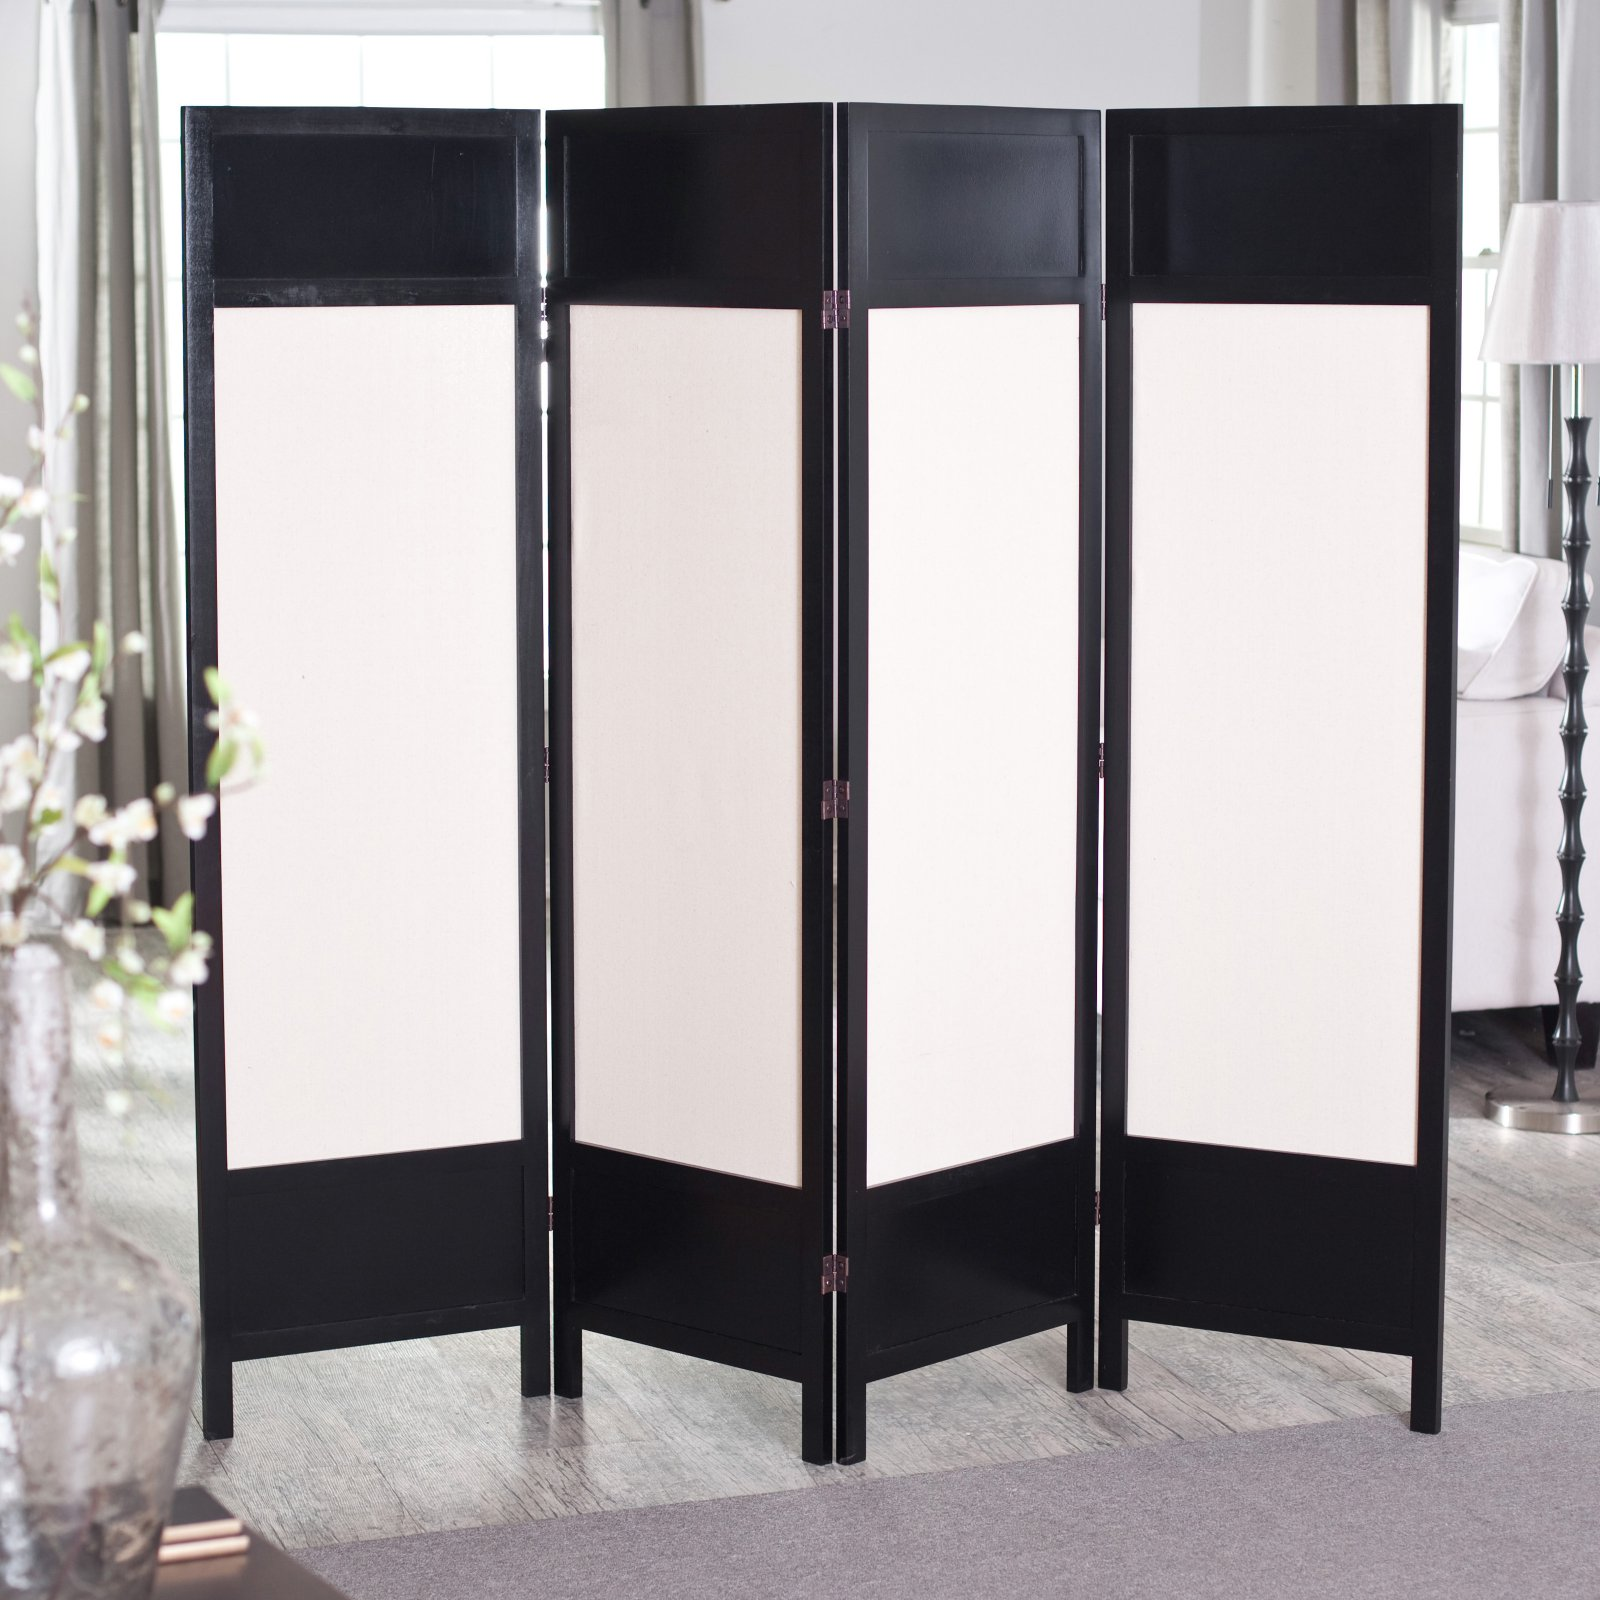 Griffin Canvas 4 Panel Room Divider - Black